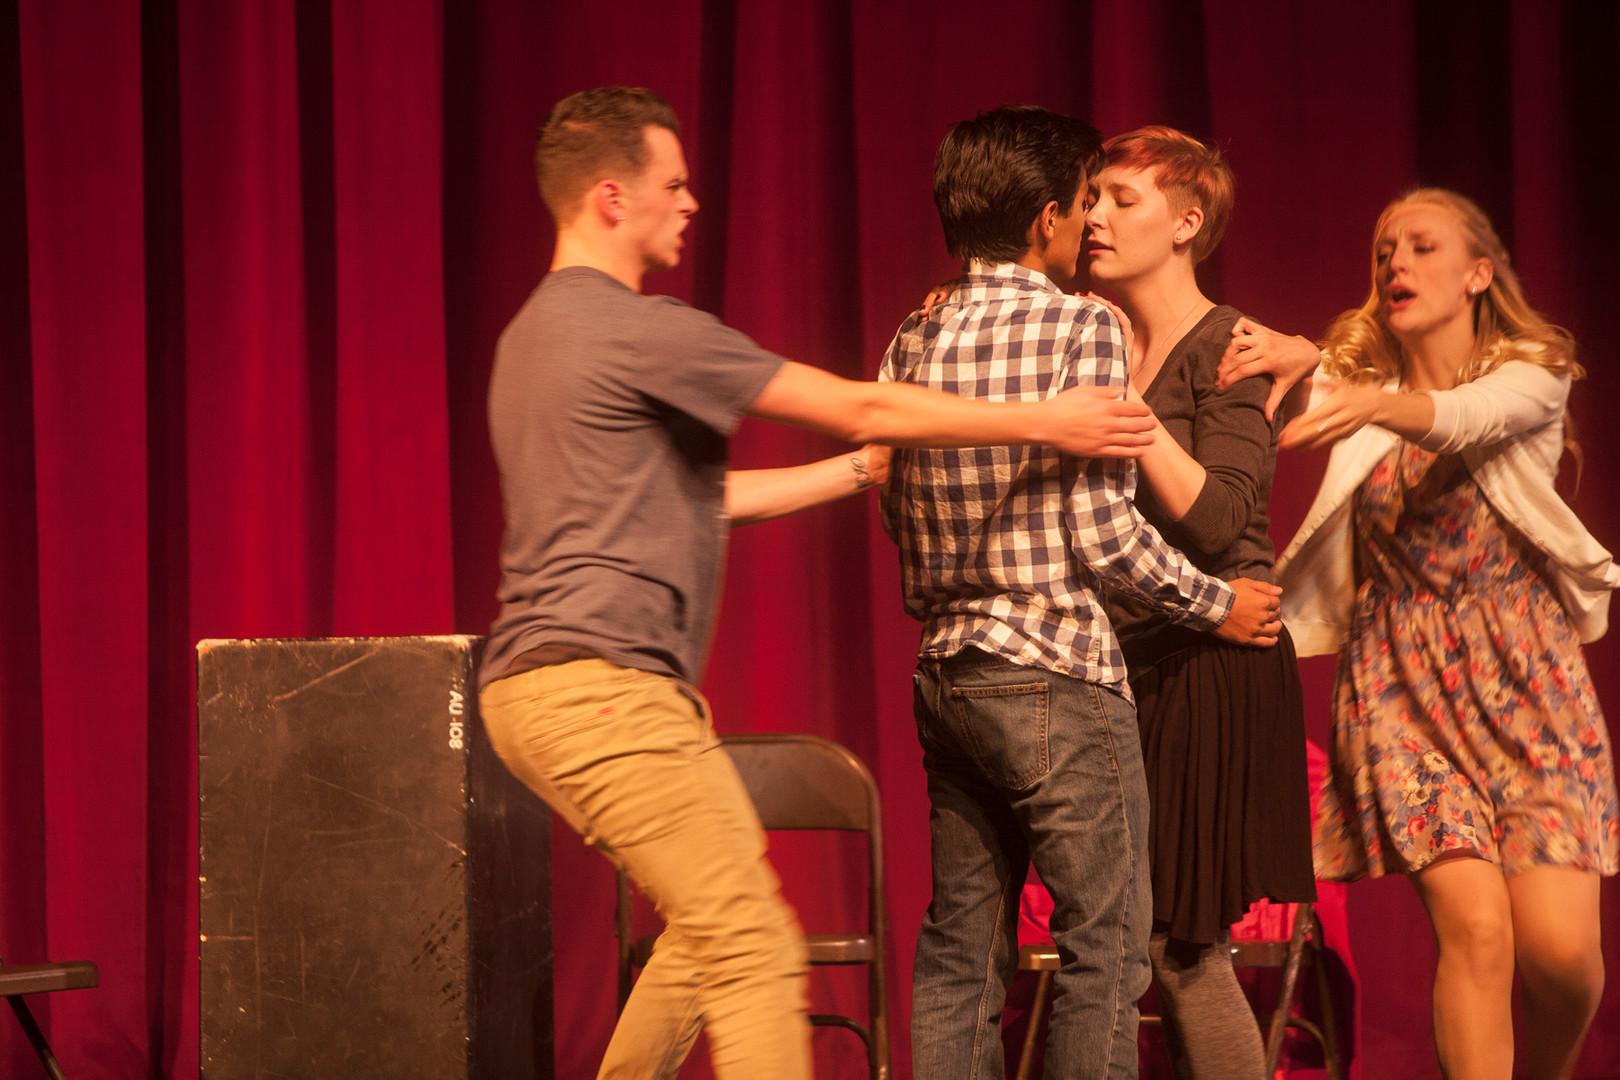 """During the """"24-hour Theatre"""" event, students Quinn Osborne, Ben Cano, Libby Lee and Kaitlin Perkins (left/right) perform a musical called Double Date. This is a story about an introvert couple who find love after a double date with an extrovert couple. The """"24-hour Theatre"""" event happens on campus at SUU and challenge students to prepare and perform plays within a 24-hours period. © September 2016"""